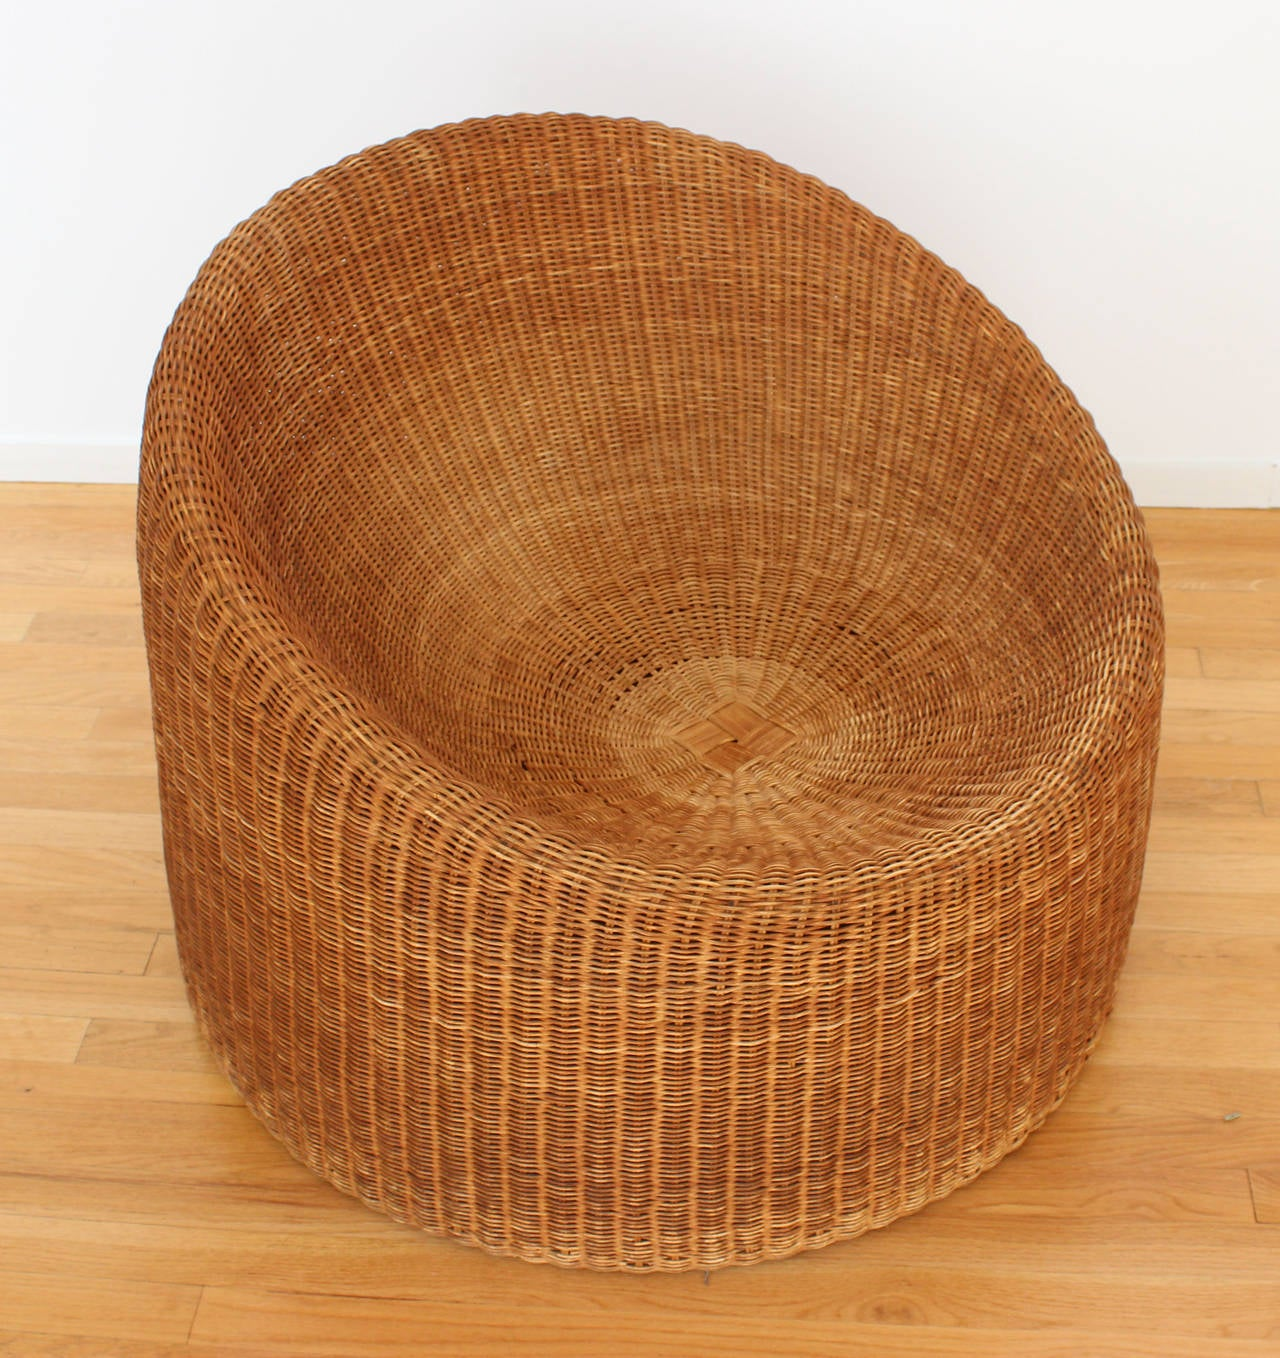 A woven rattan chair designed by Eero Aarnio (b. Helsinki, 1932) for Stendig.